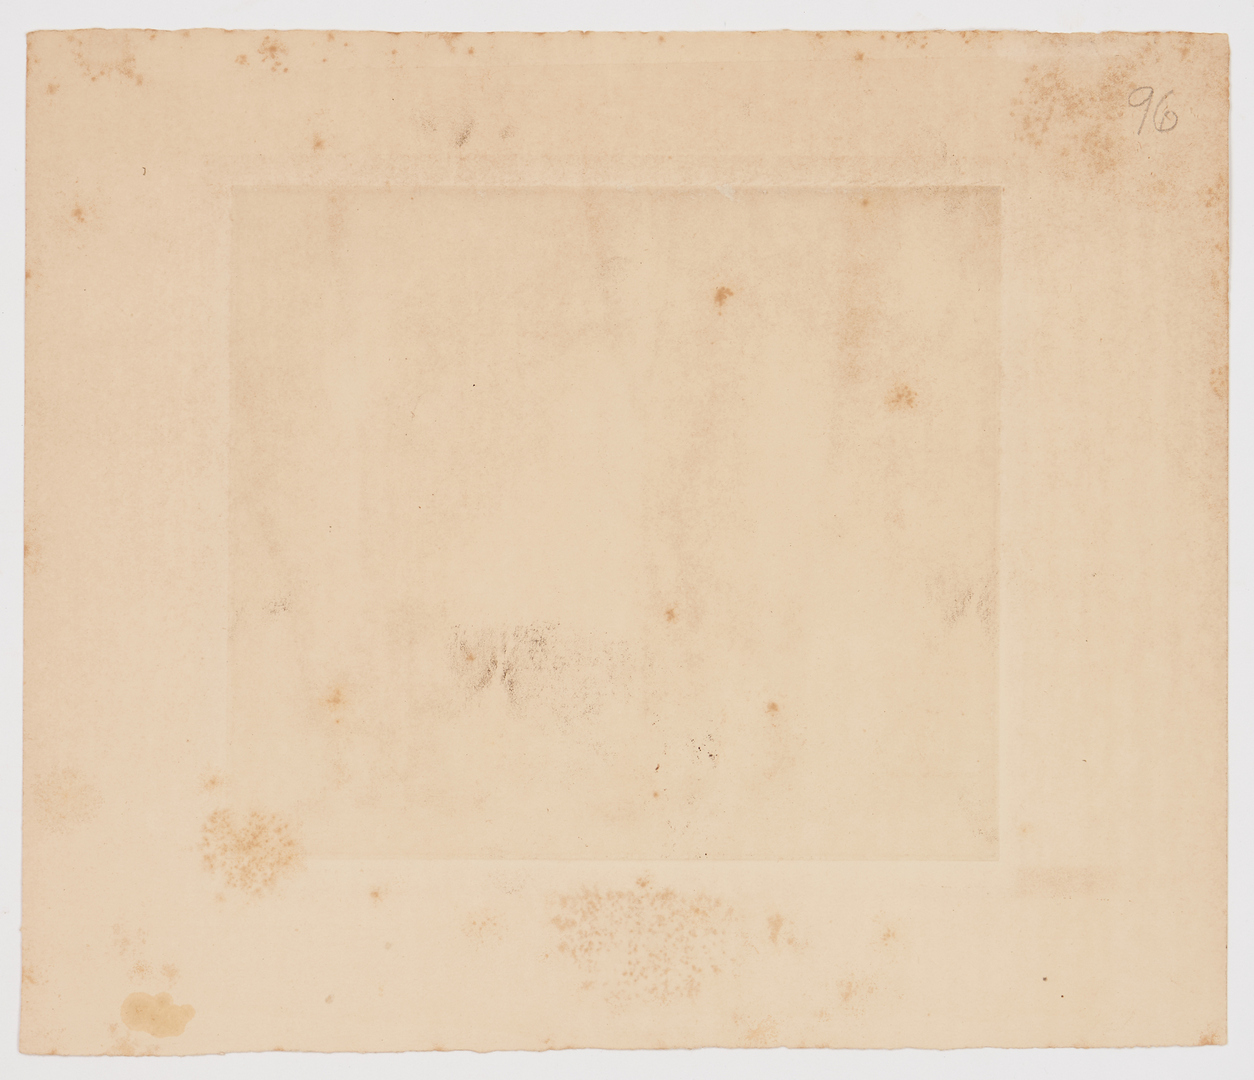 Lot 335: Alfred Hutty and Chauncey Ryder Landscape Etchings, 2 items